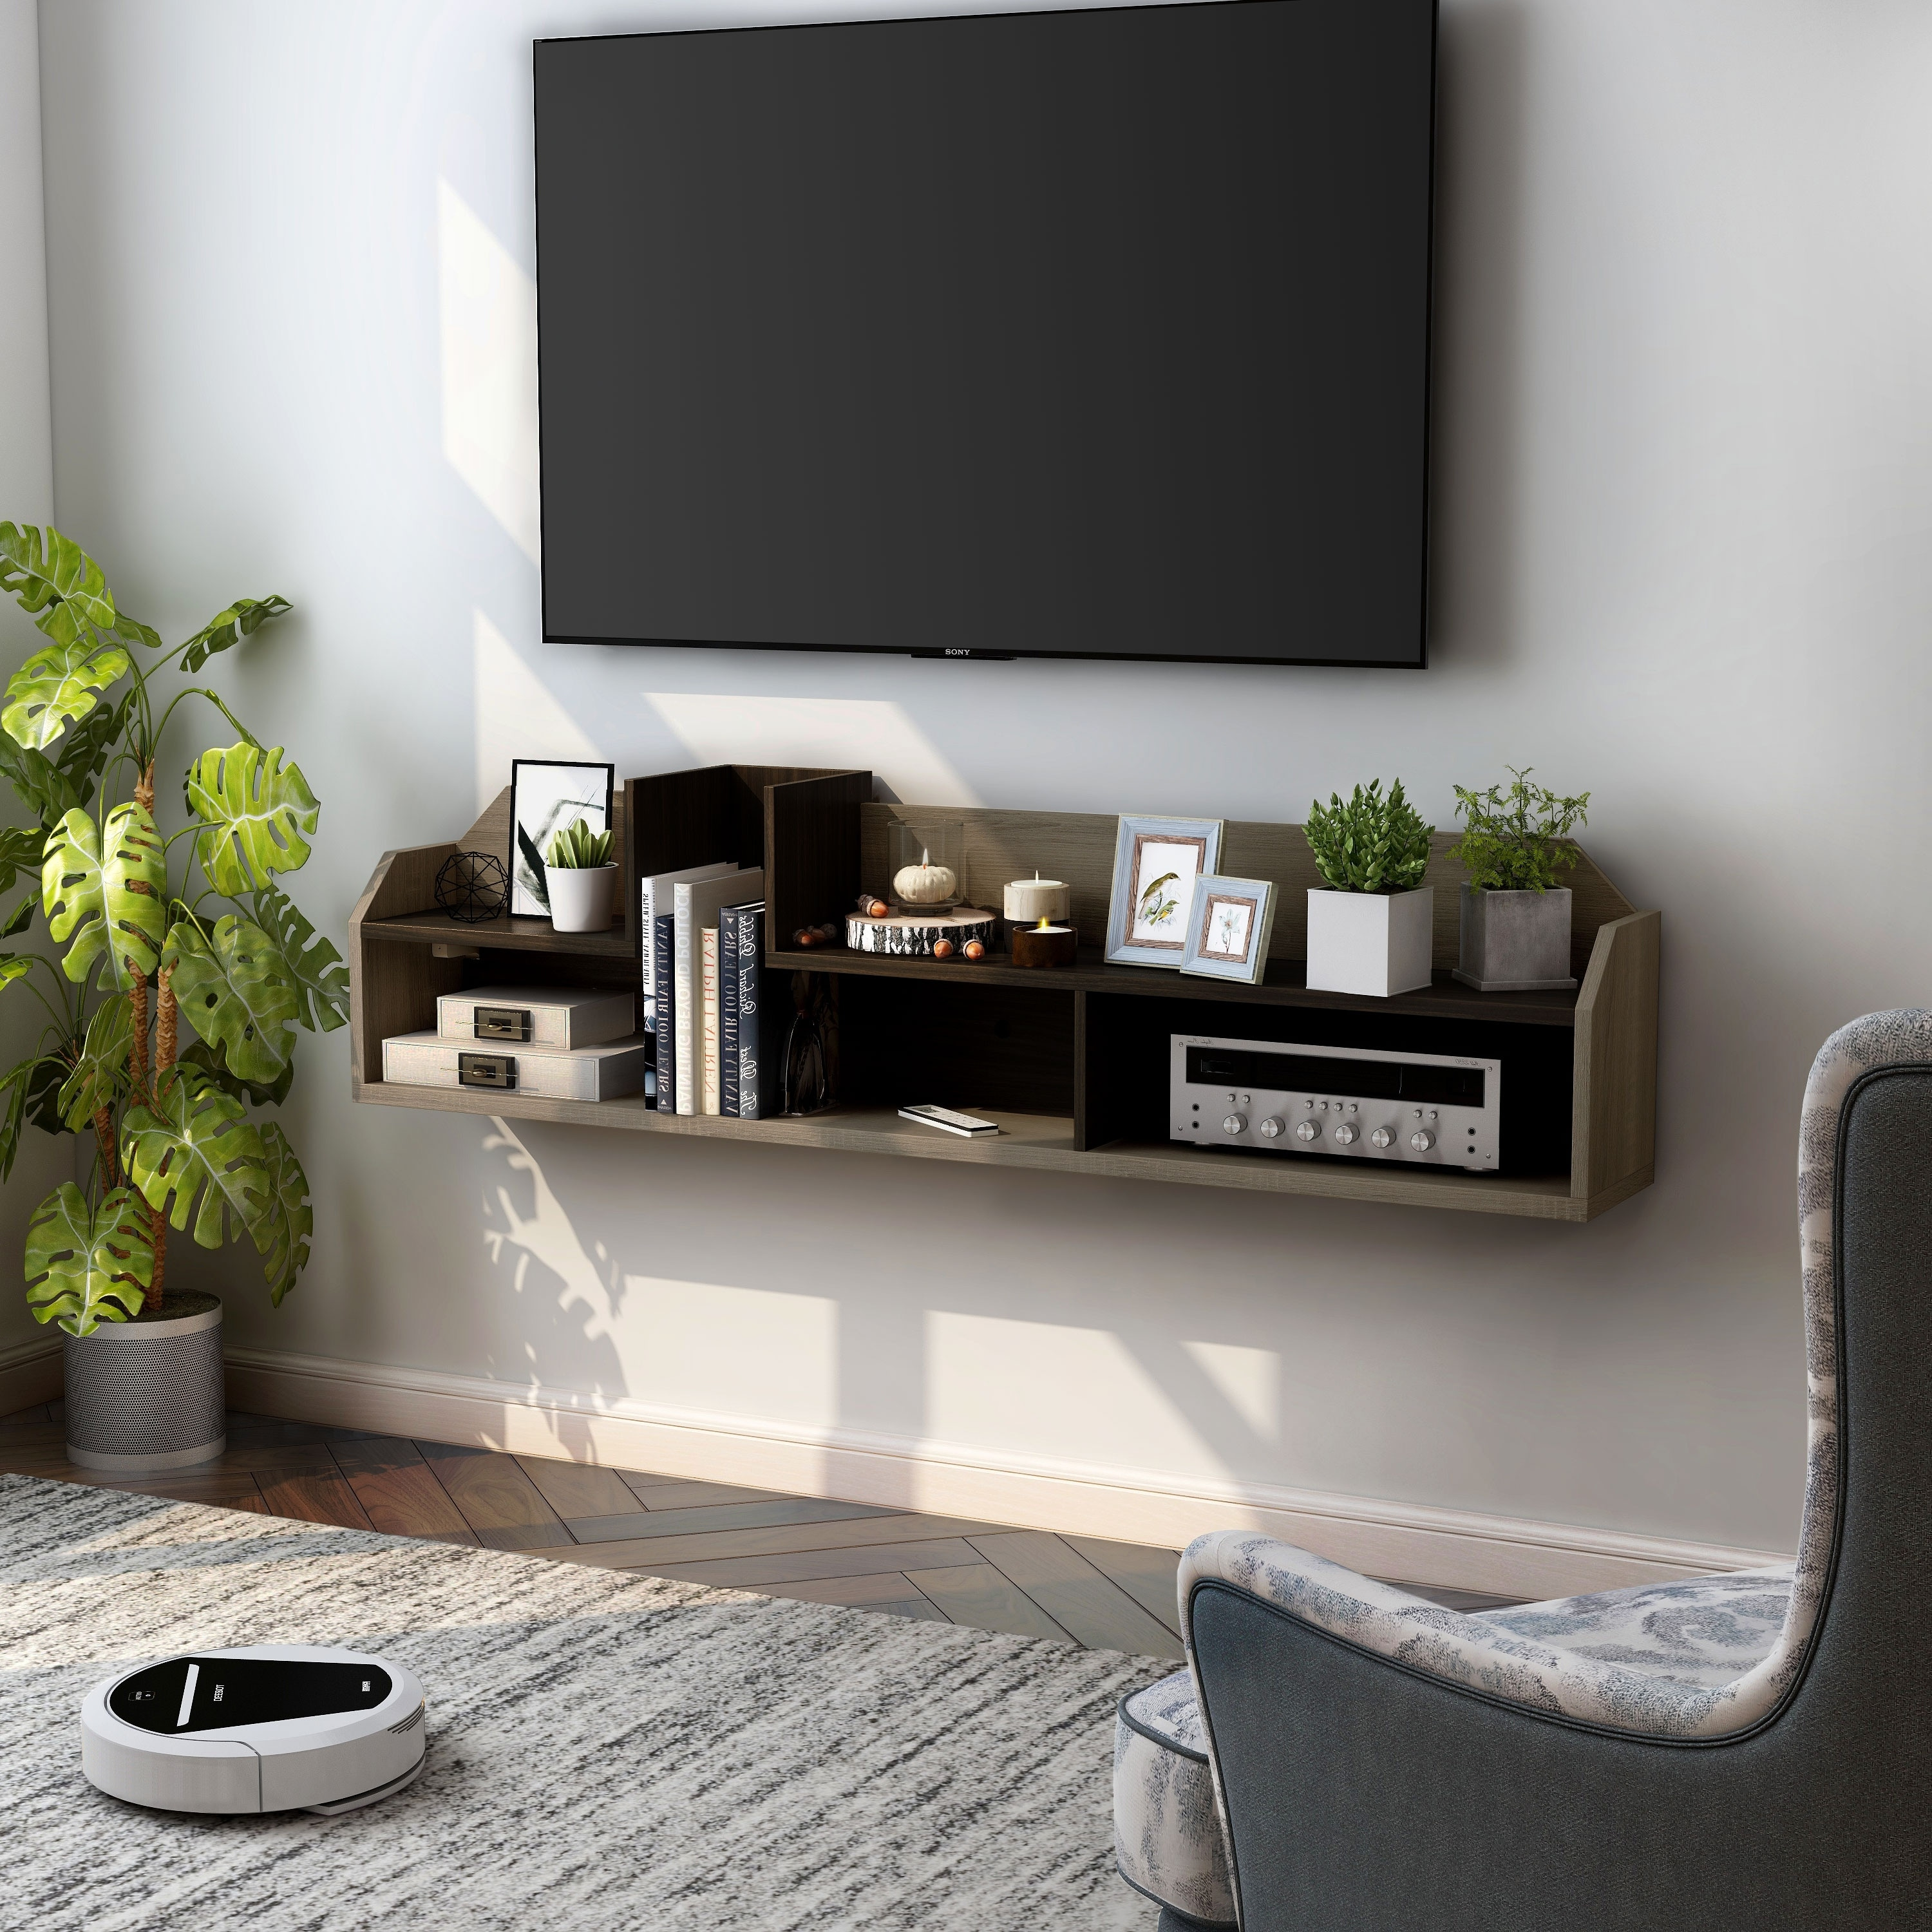 Furniture Of America Paulo Contemporary Wall Mounted Media Console Overstock 31292931